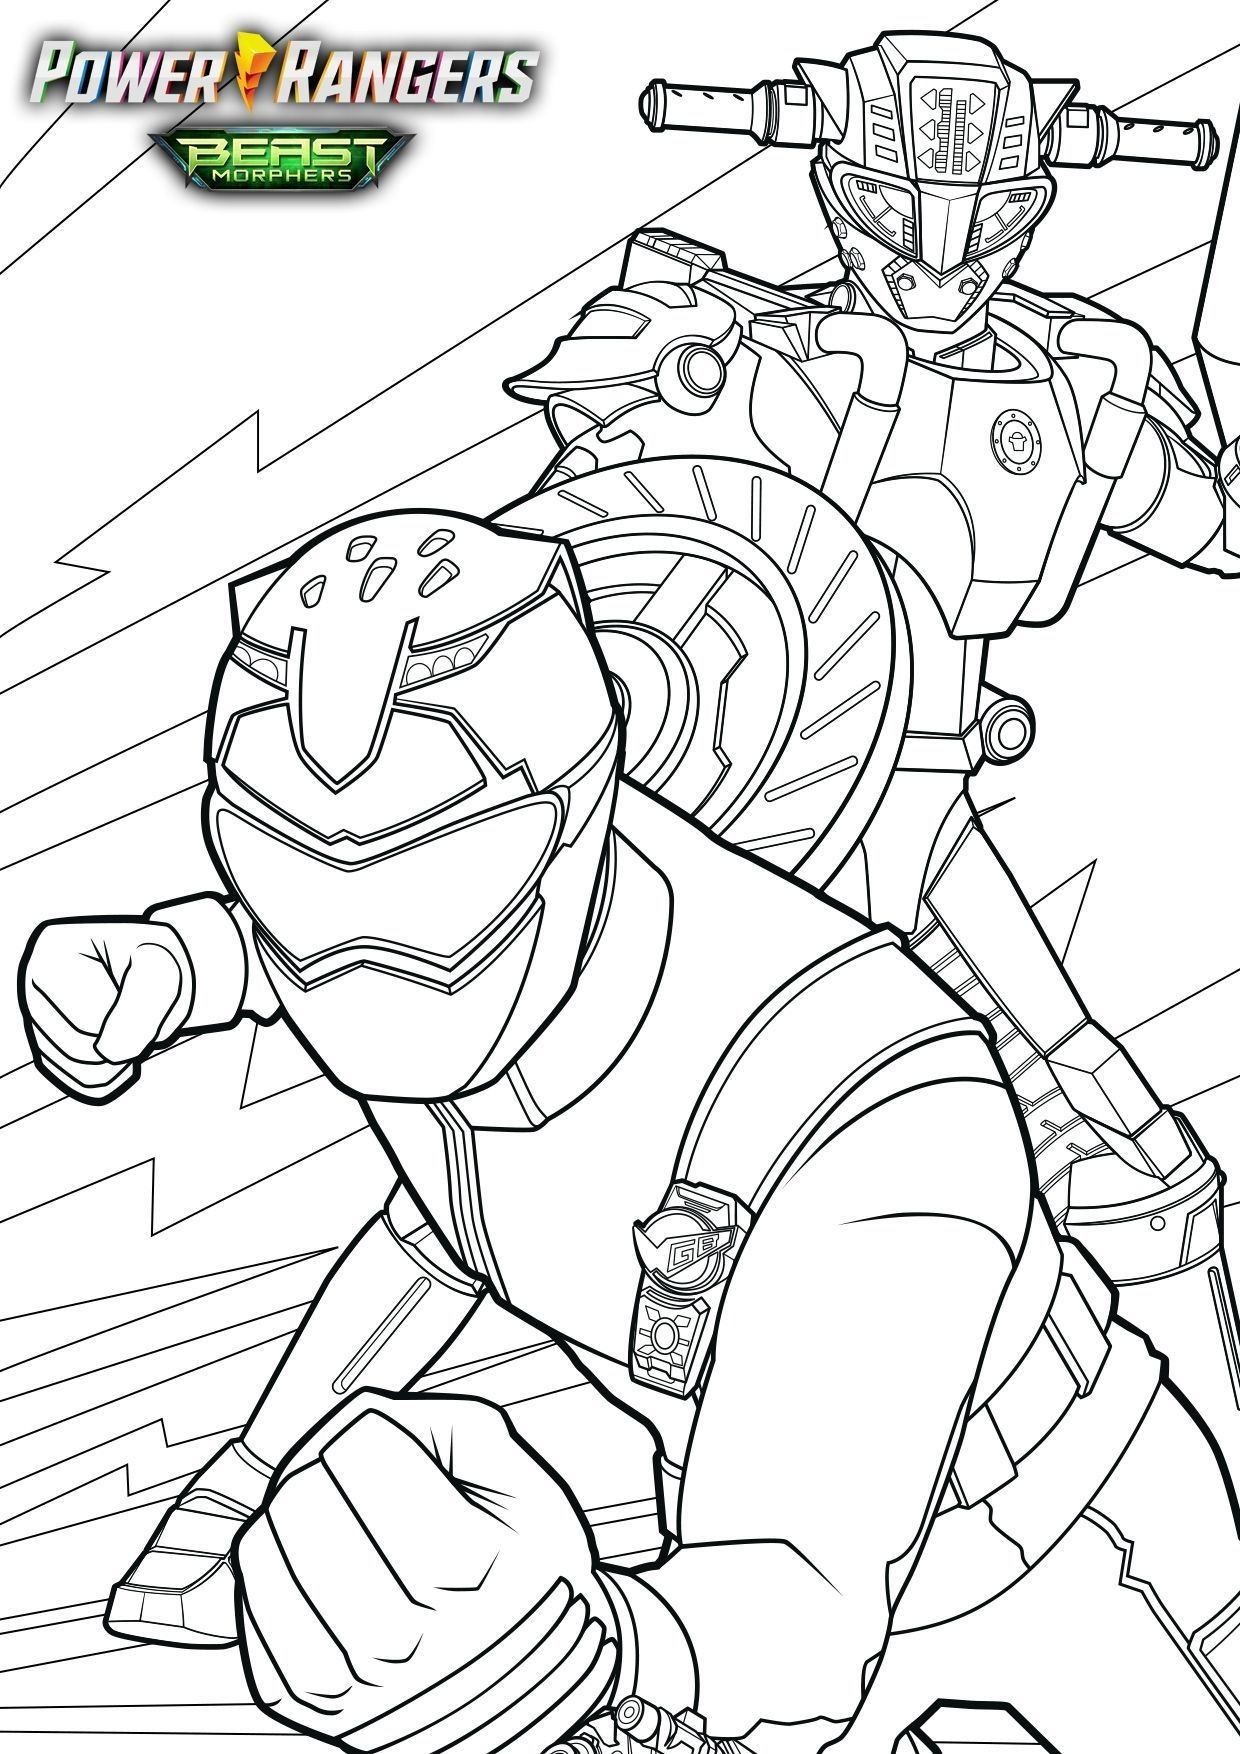 Coloriages Power Rangers Beast Morphers A Imprimer Power Rangers Beast Morphers Coloriage Power Rangers Power Rangers Coloriage Spiderman